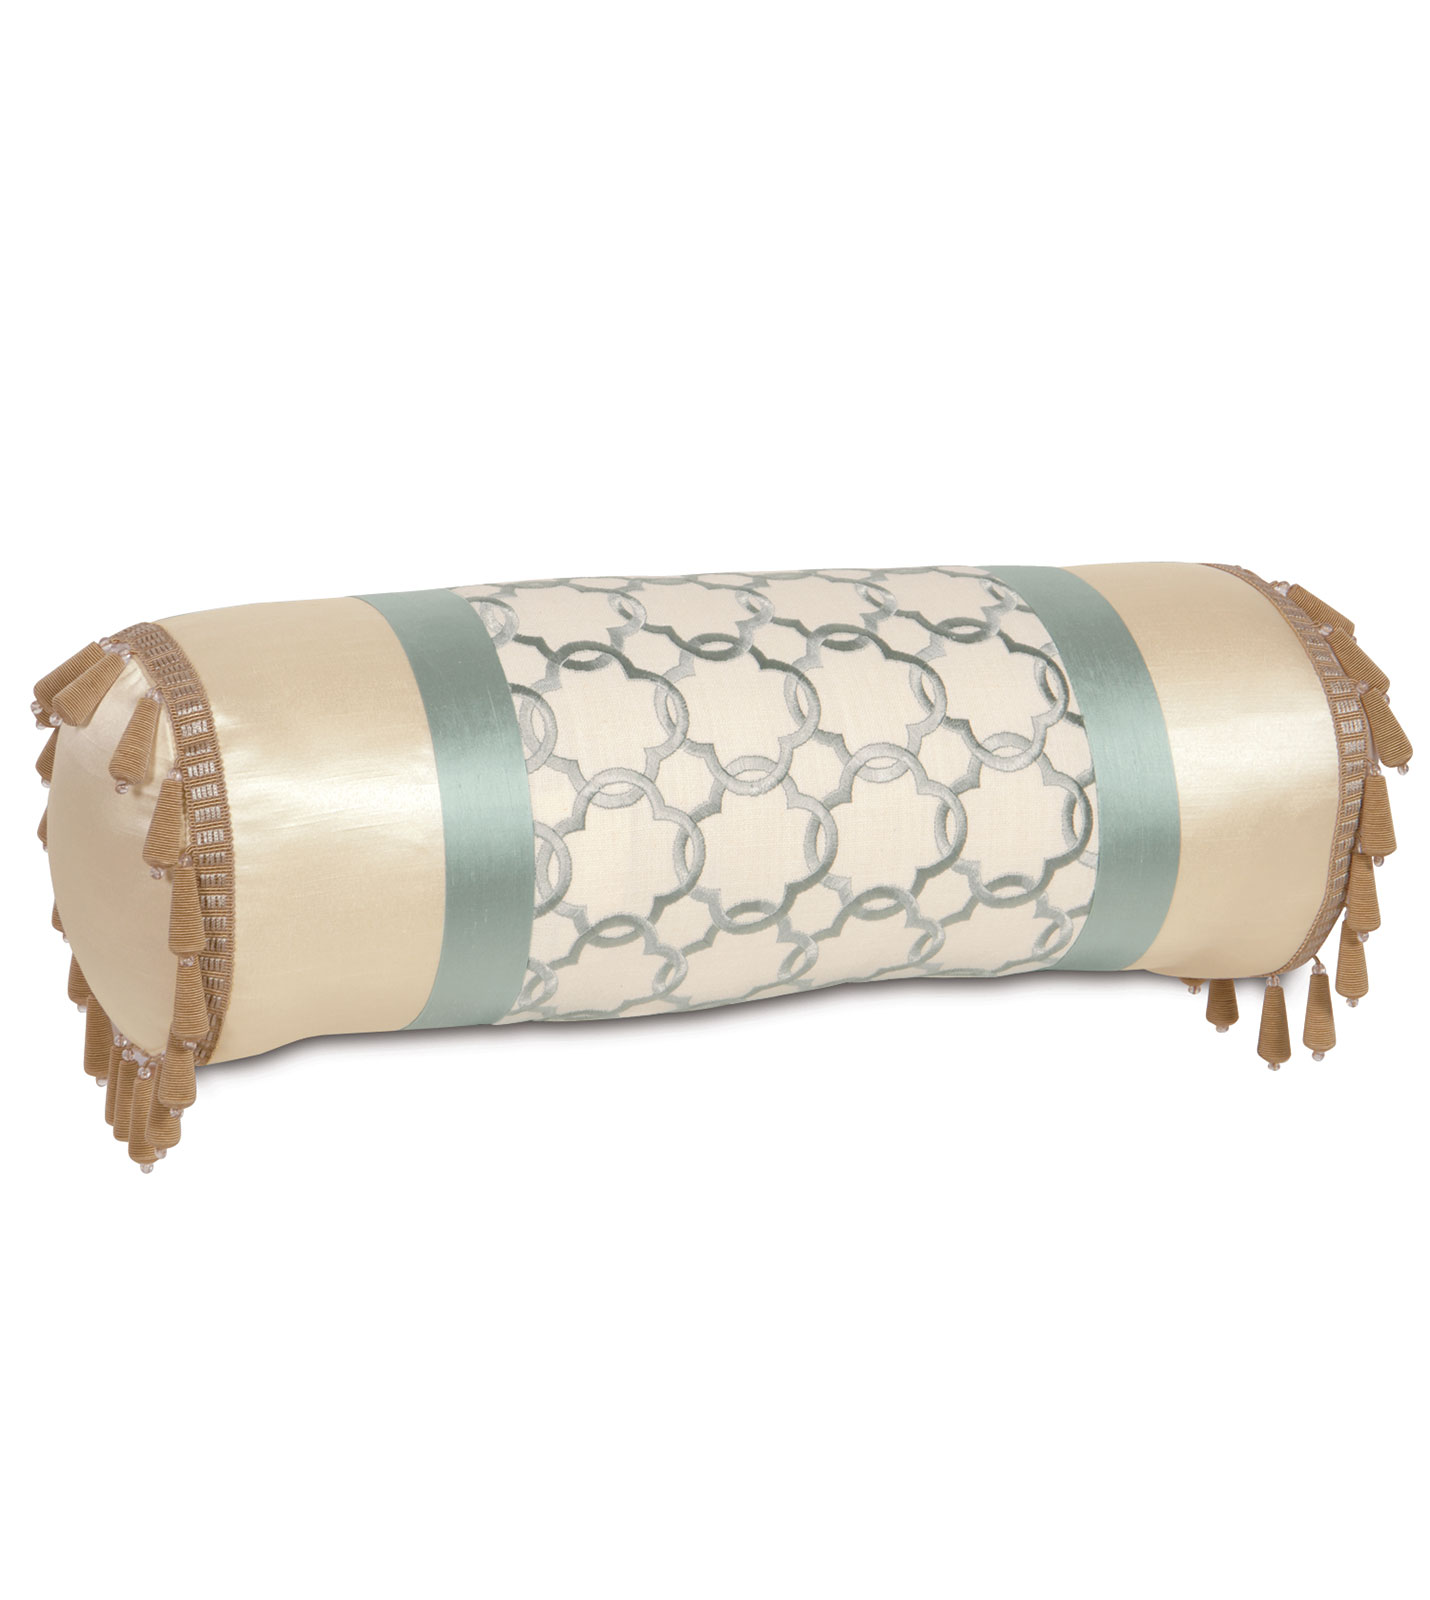 Luxury Bedding by Eastern Accents - VERLAINE OCEAN INSERT BOLSTER